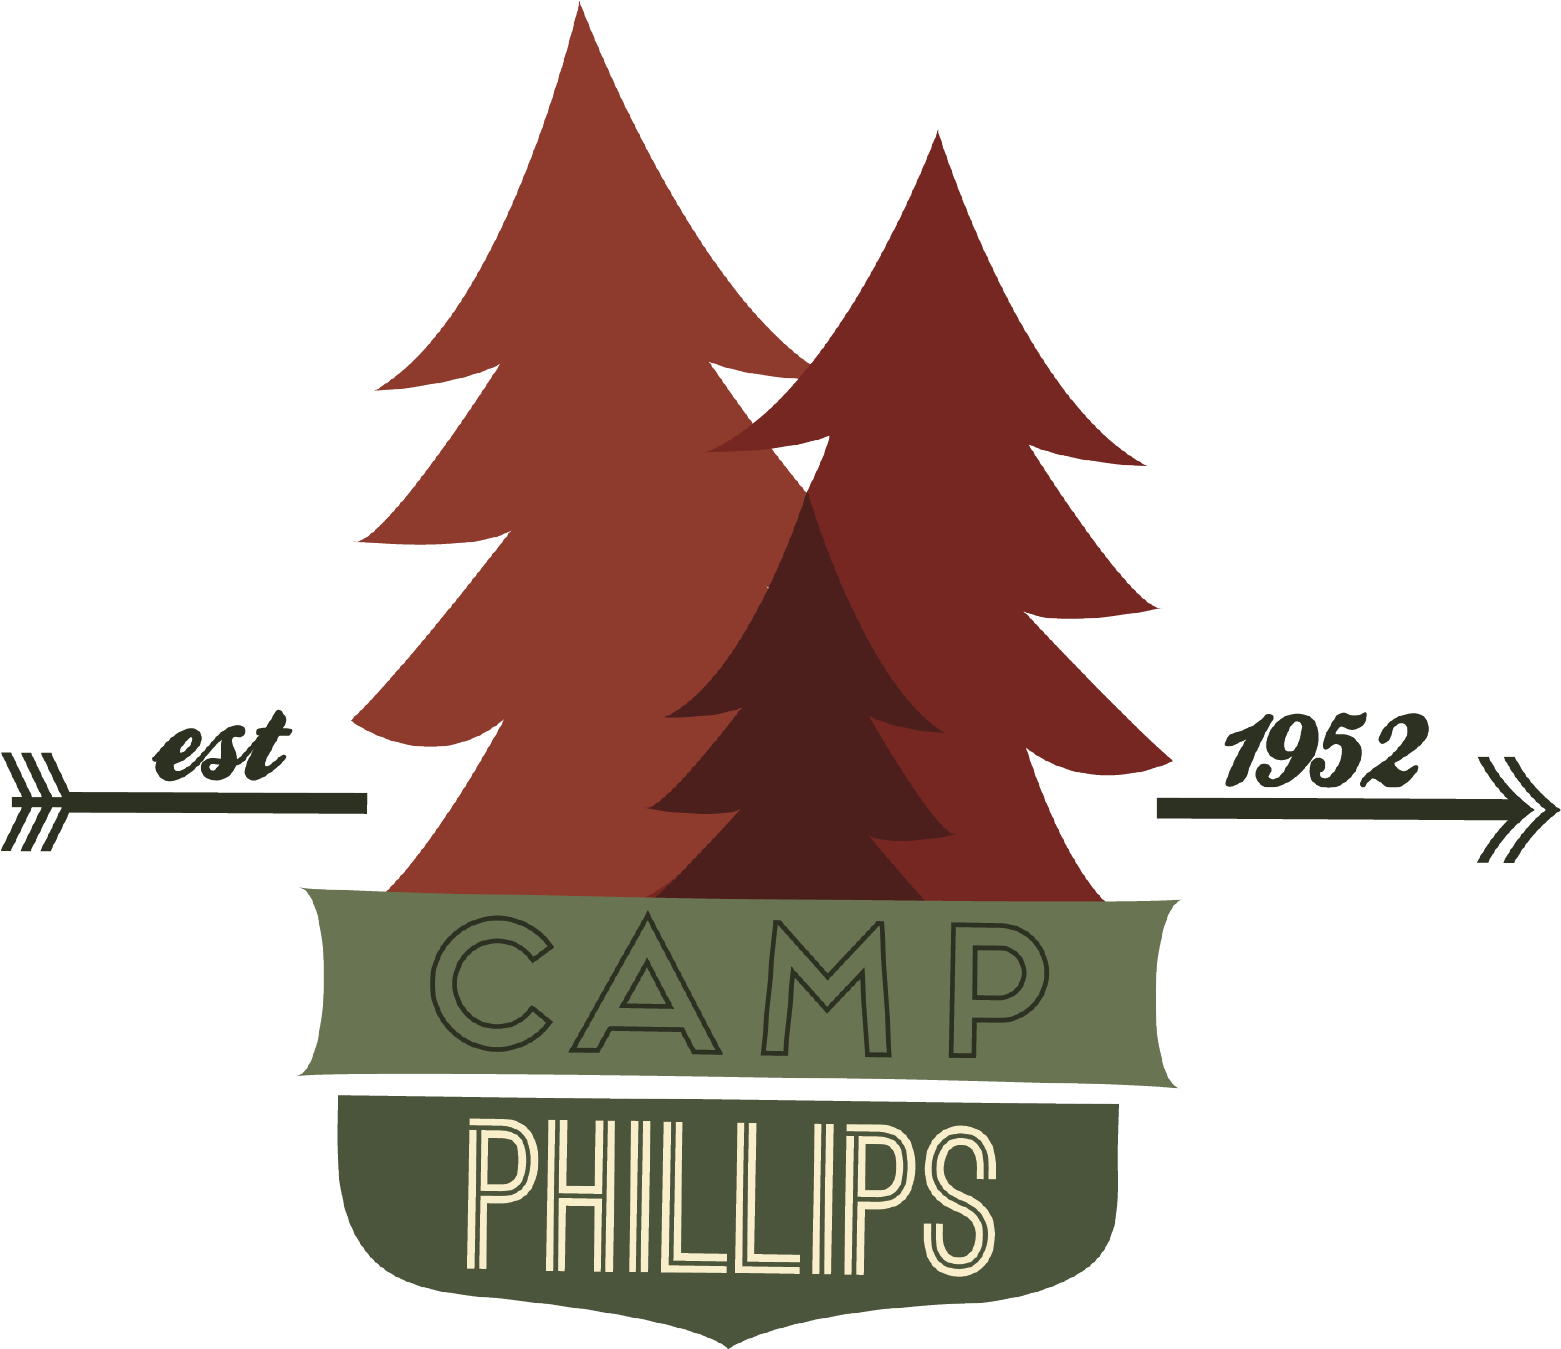 Camp Phillips Logo